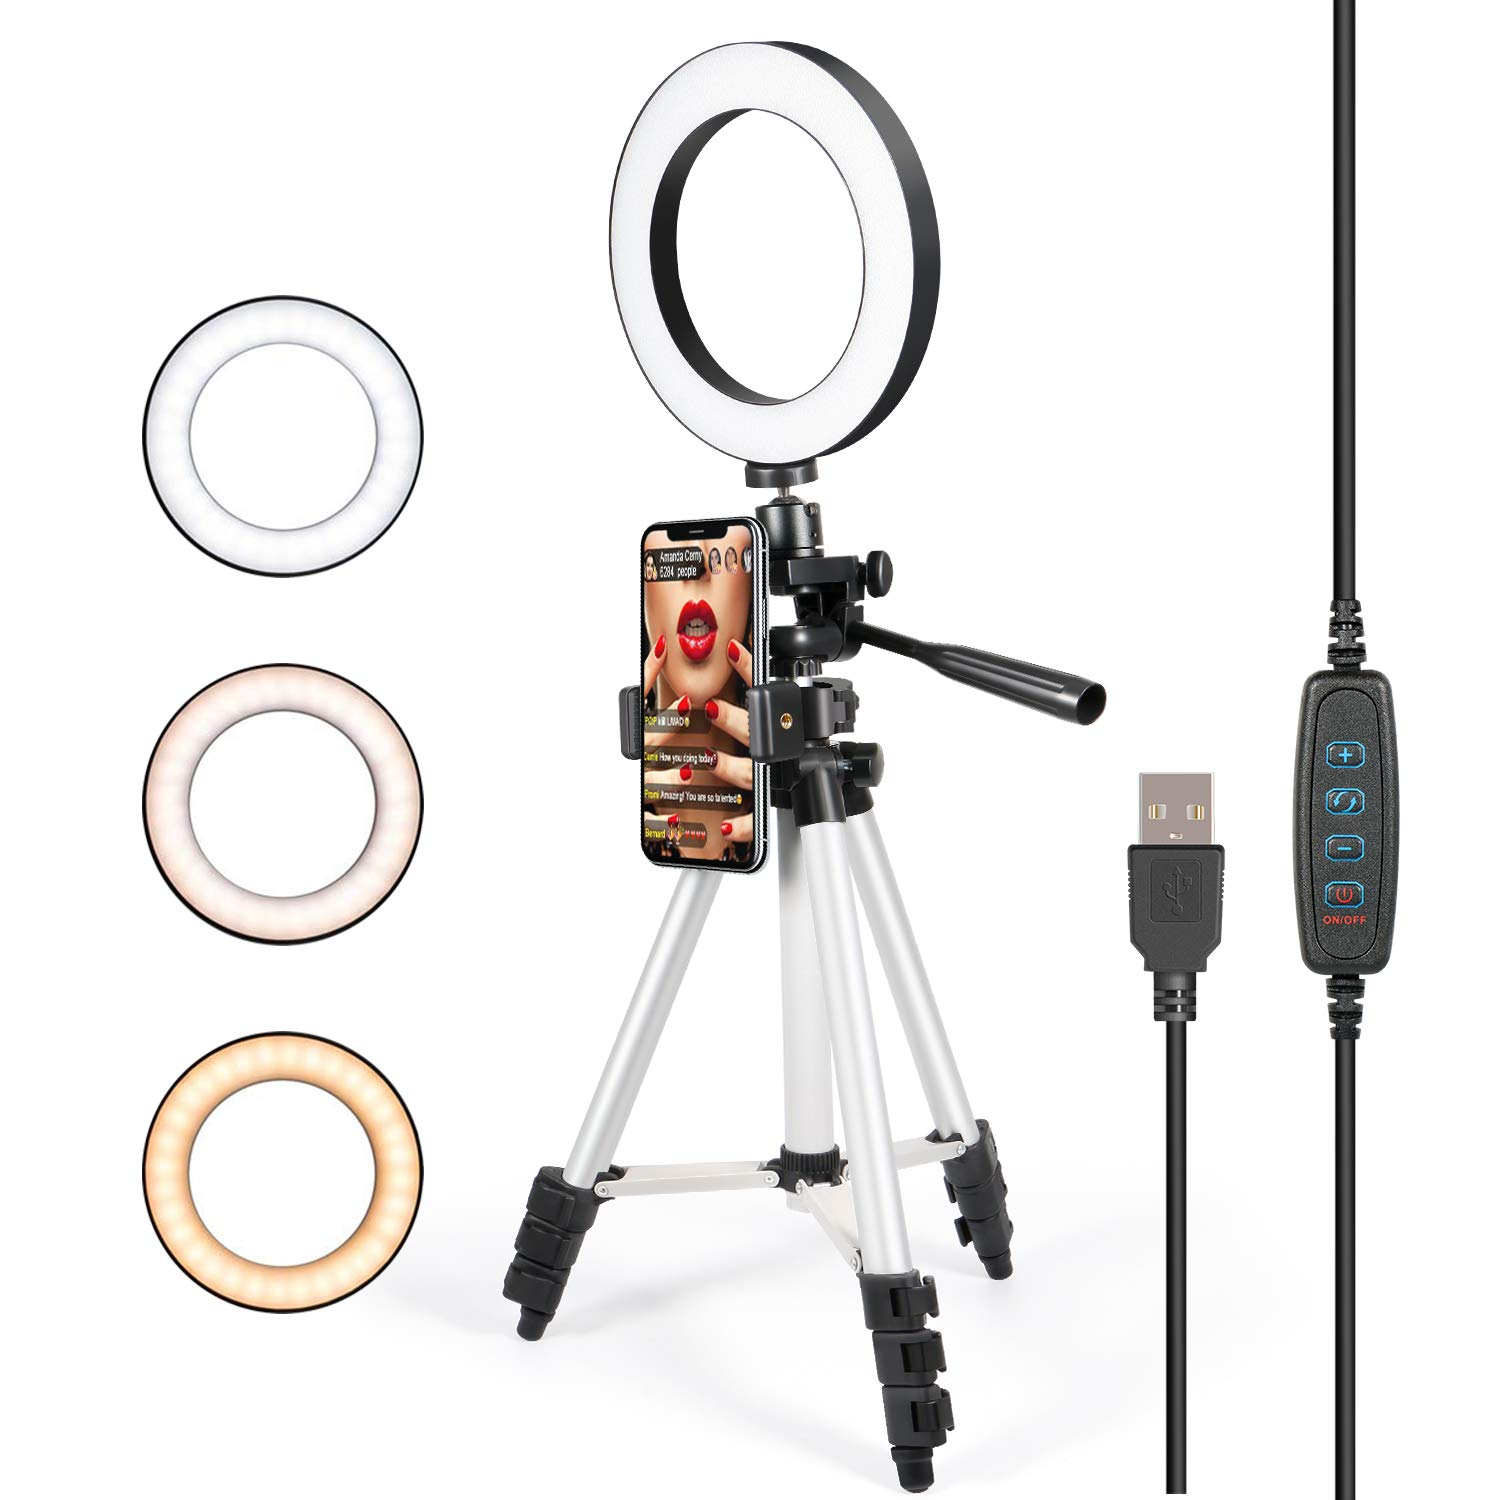 Photography Phone Holder Tripod Stand With LED Selfie Ring Light Dimmable Makeup Lamp For IPhone Samsung YouTube Live Stream